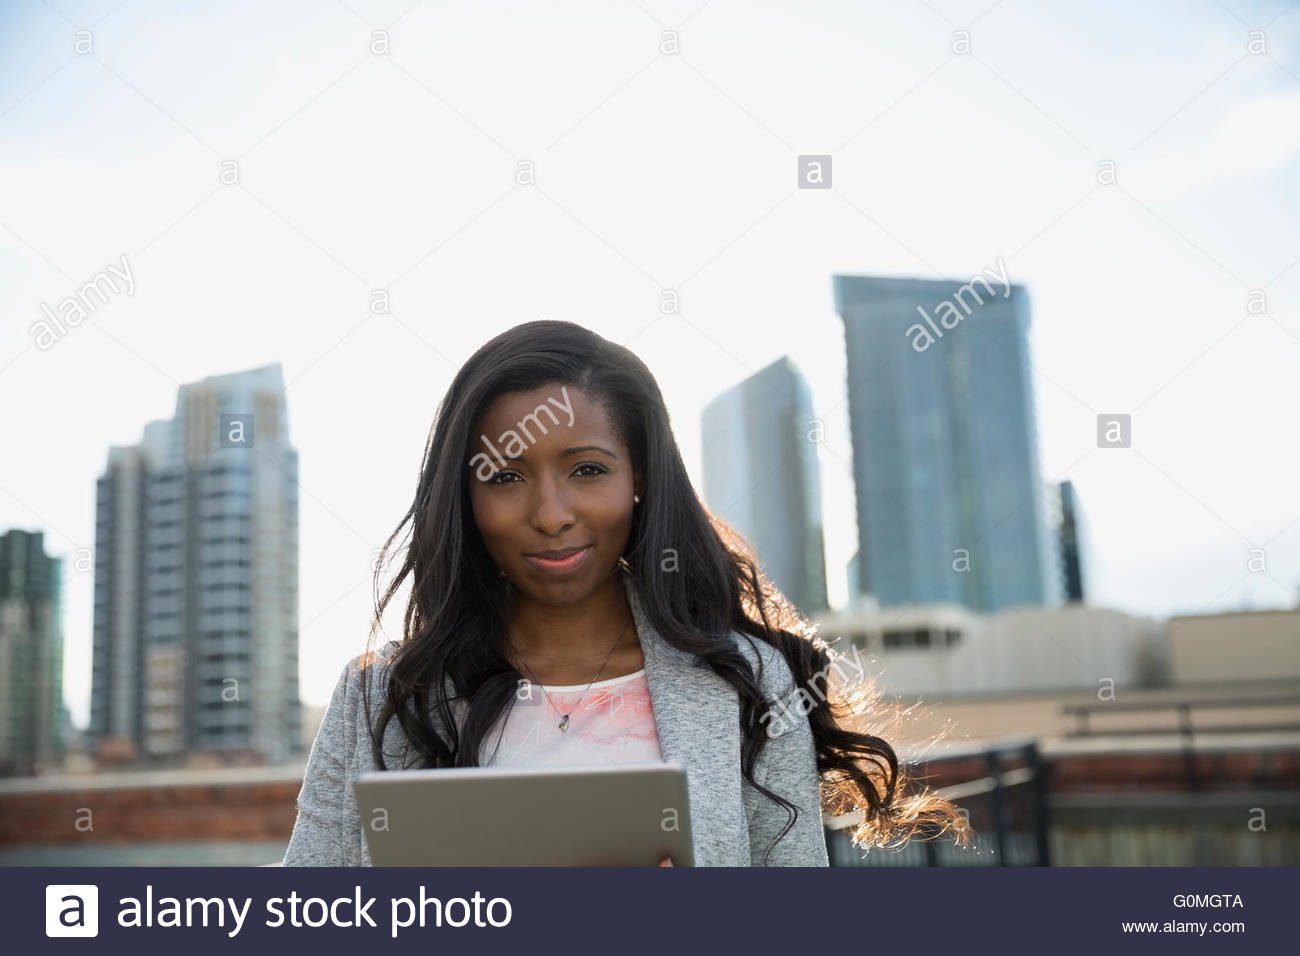 Portrait confident businesswoman using digital tablet urban rooftop Photo Stock